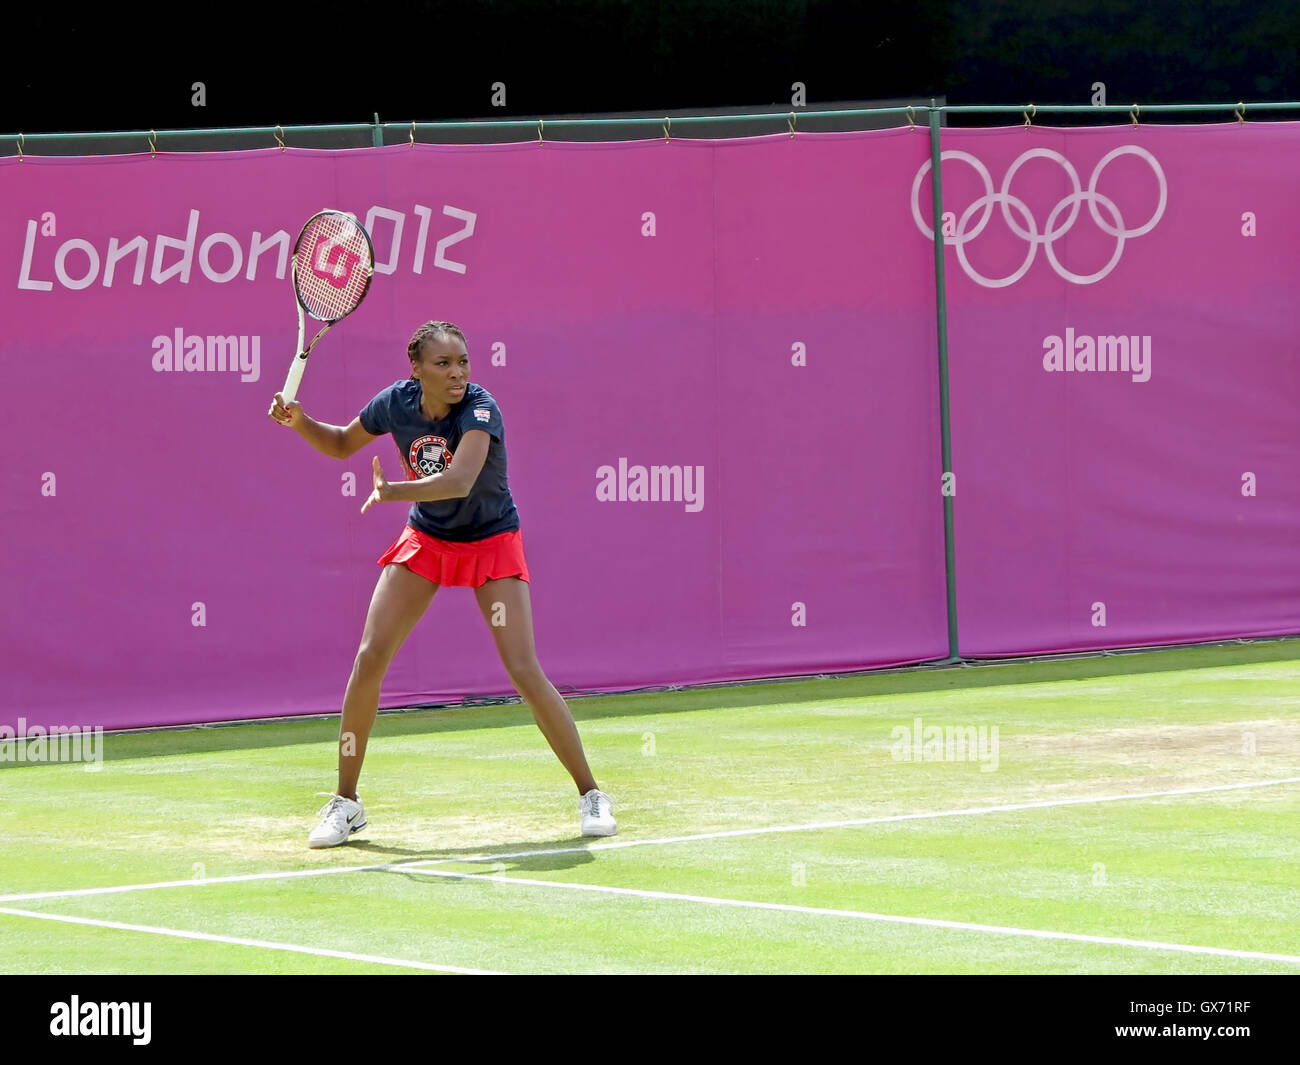 Wimbledon, England. August 2nd, 2012. Venus Williams on the practice court at the Summer Olympics in London in 2012. - Stock Image